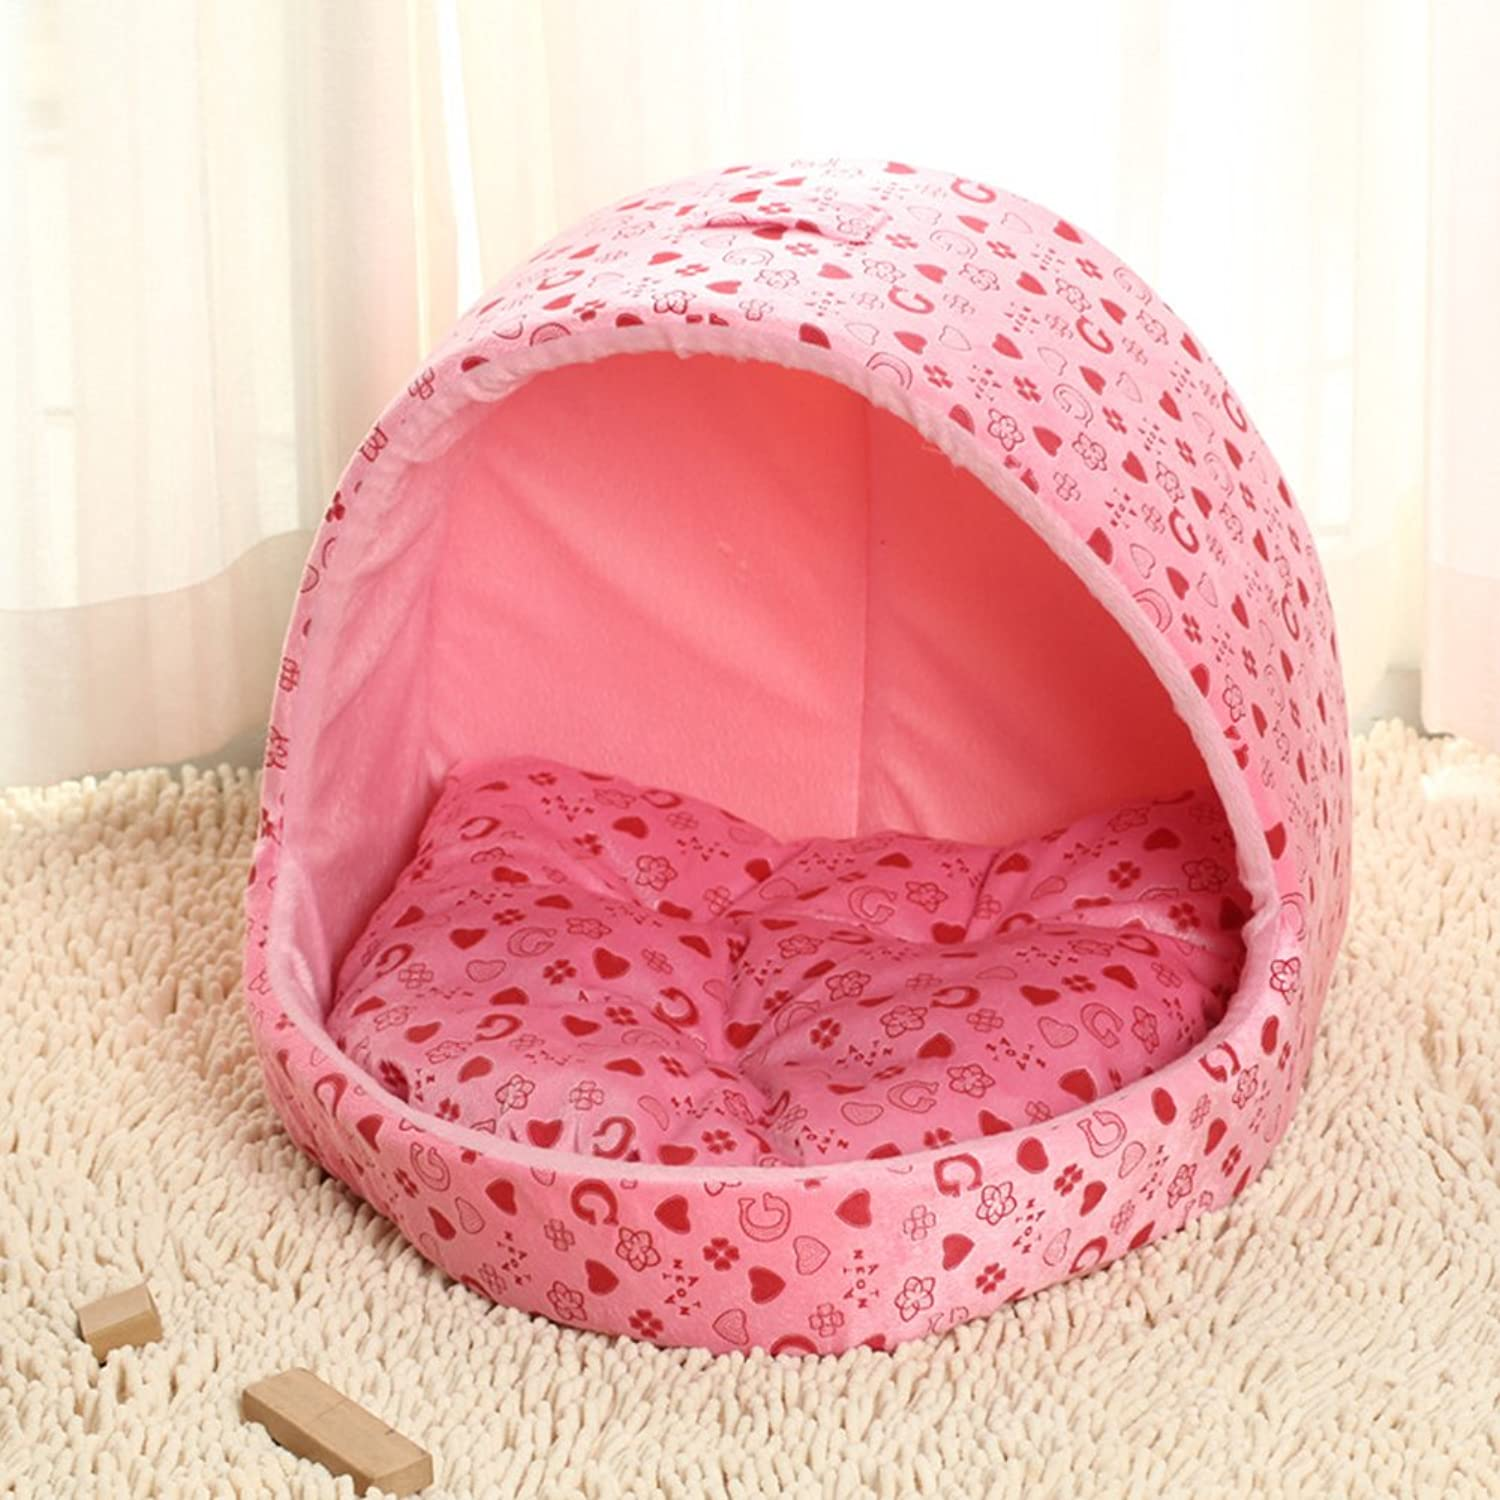 Dog Kennel Removable And Washable, Autumn And Winter Warm Pet Nest Dog Bed, Pet Supplies,M